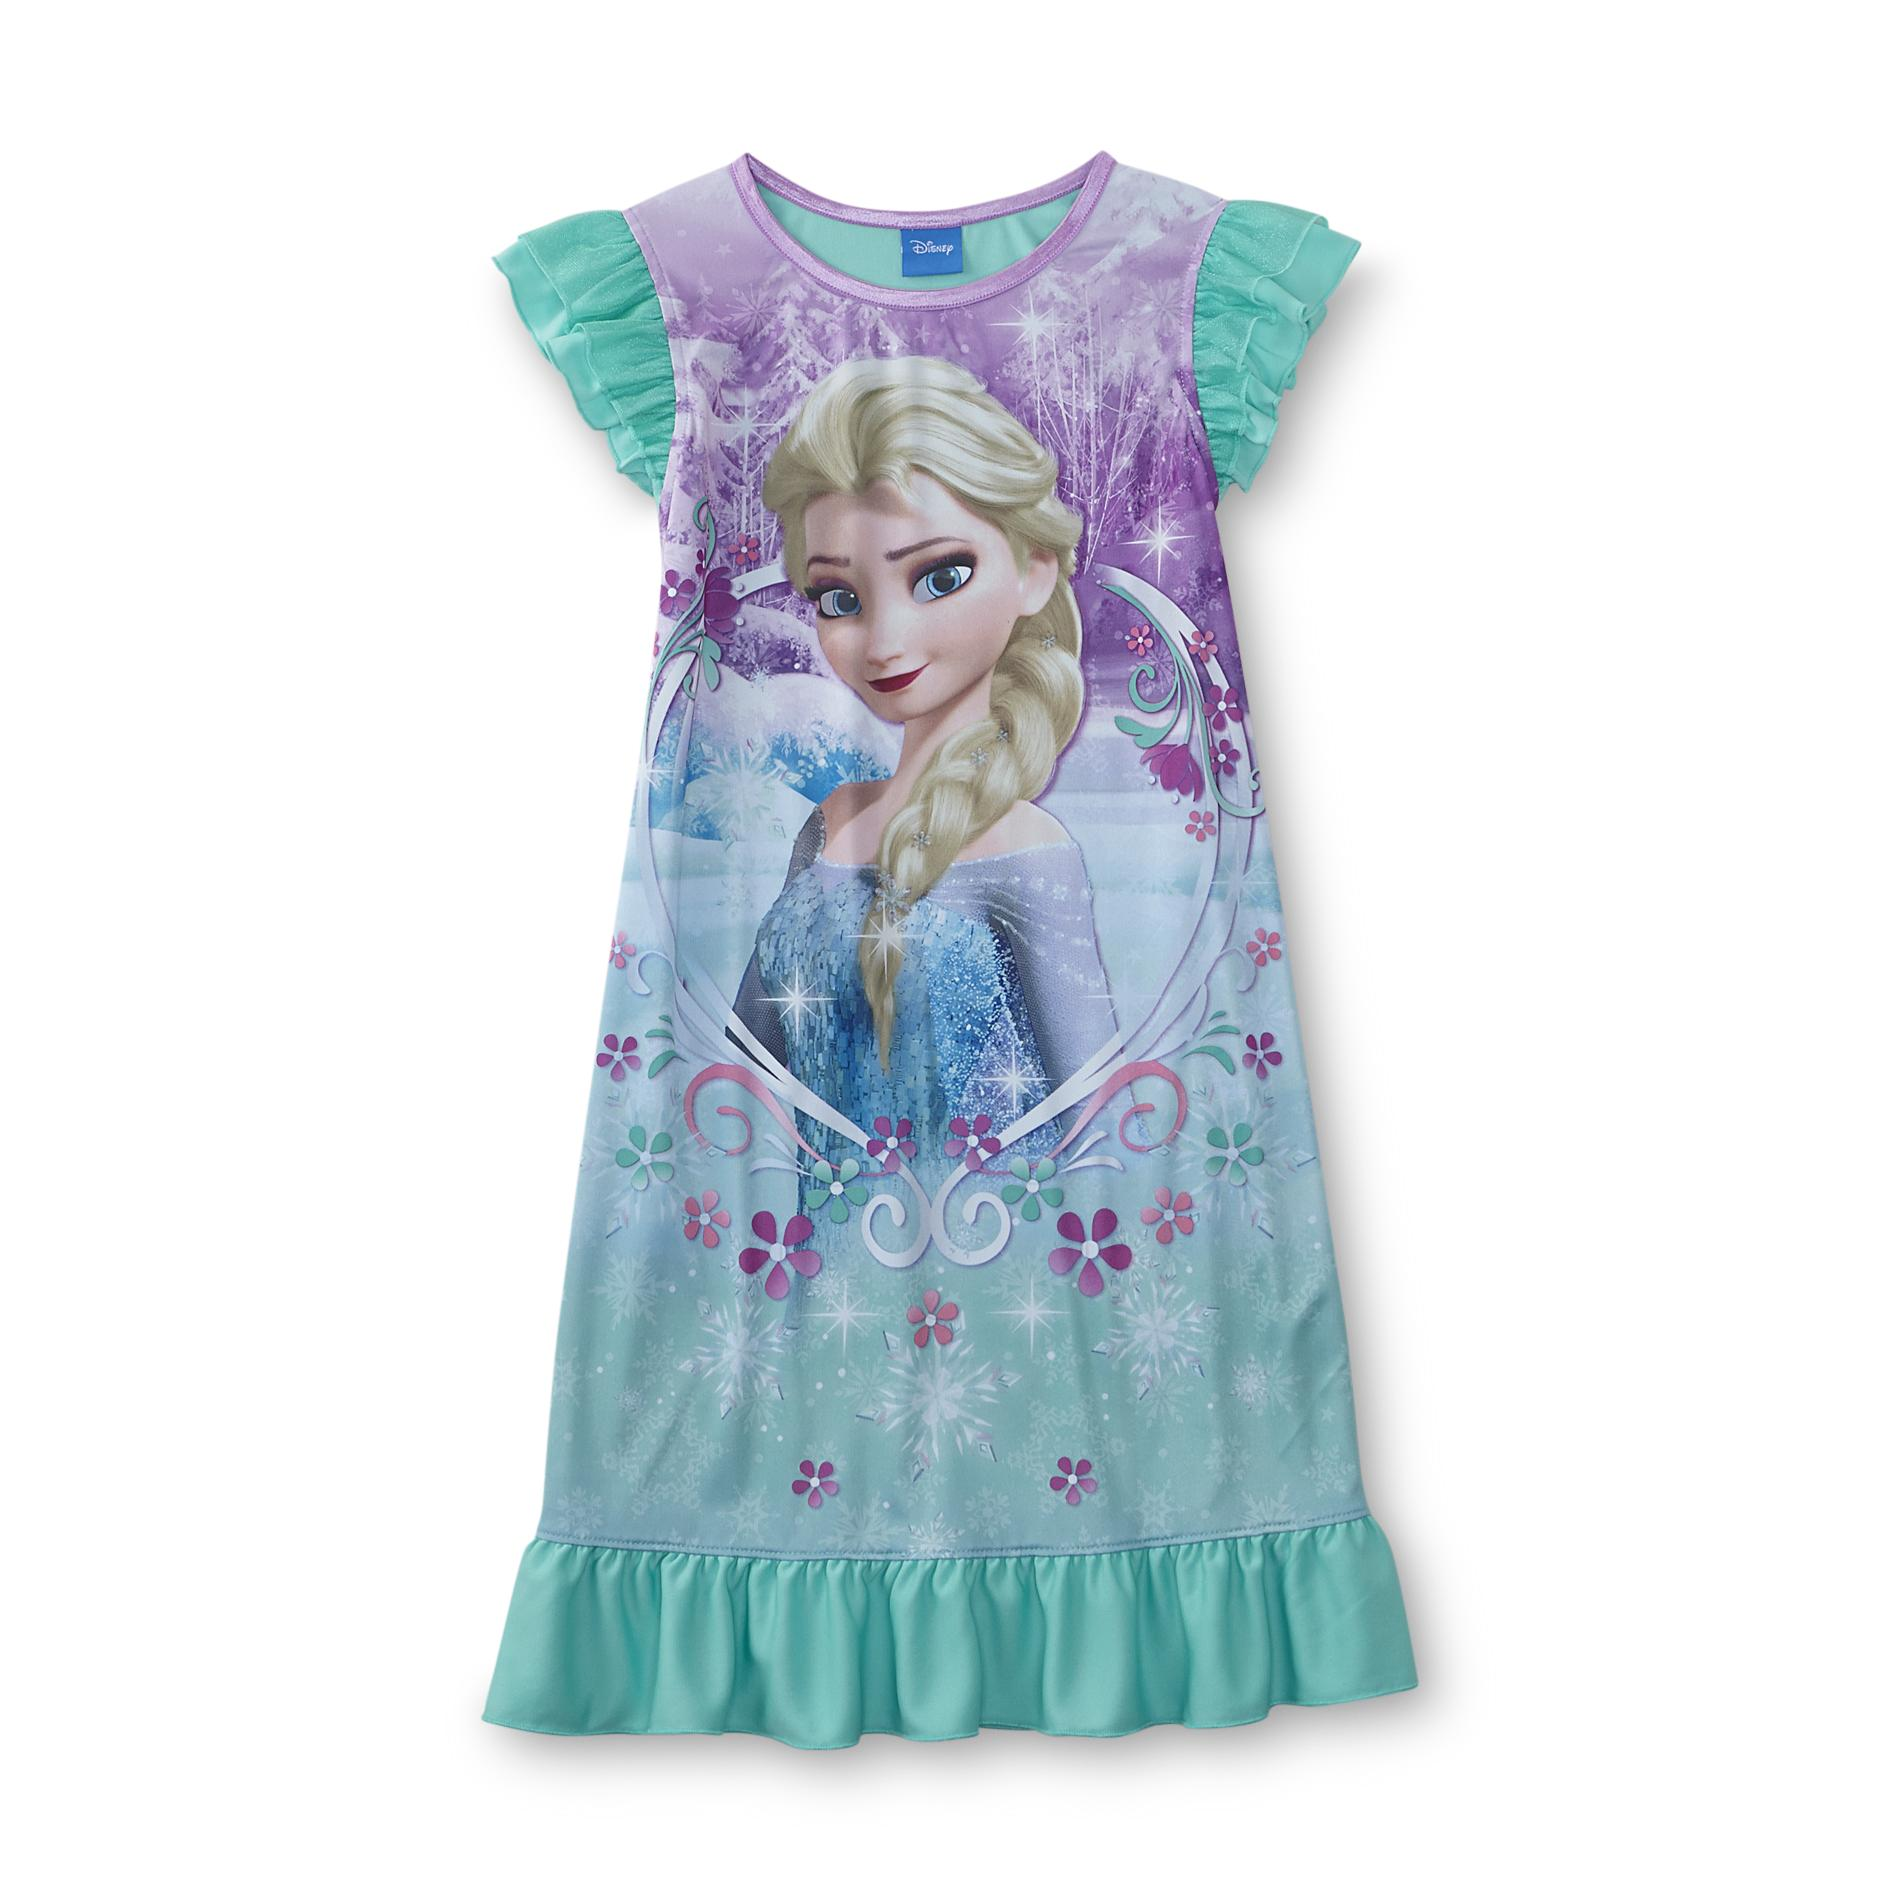 Disney Frozen Girl's Nightgown - Elsa